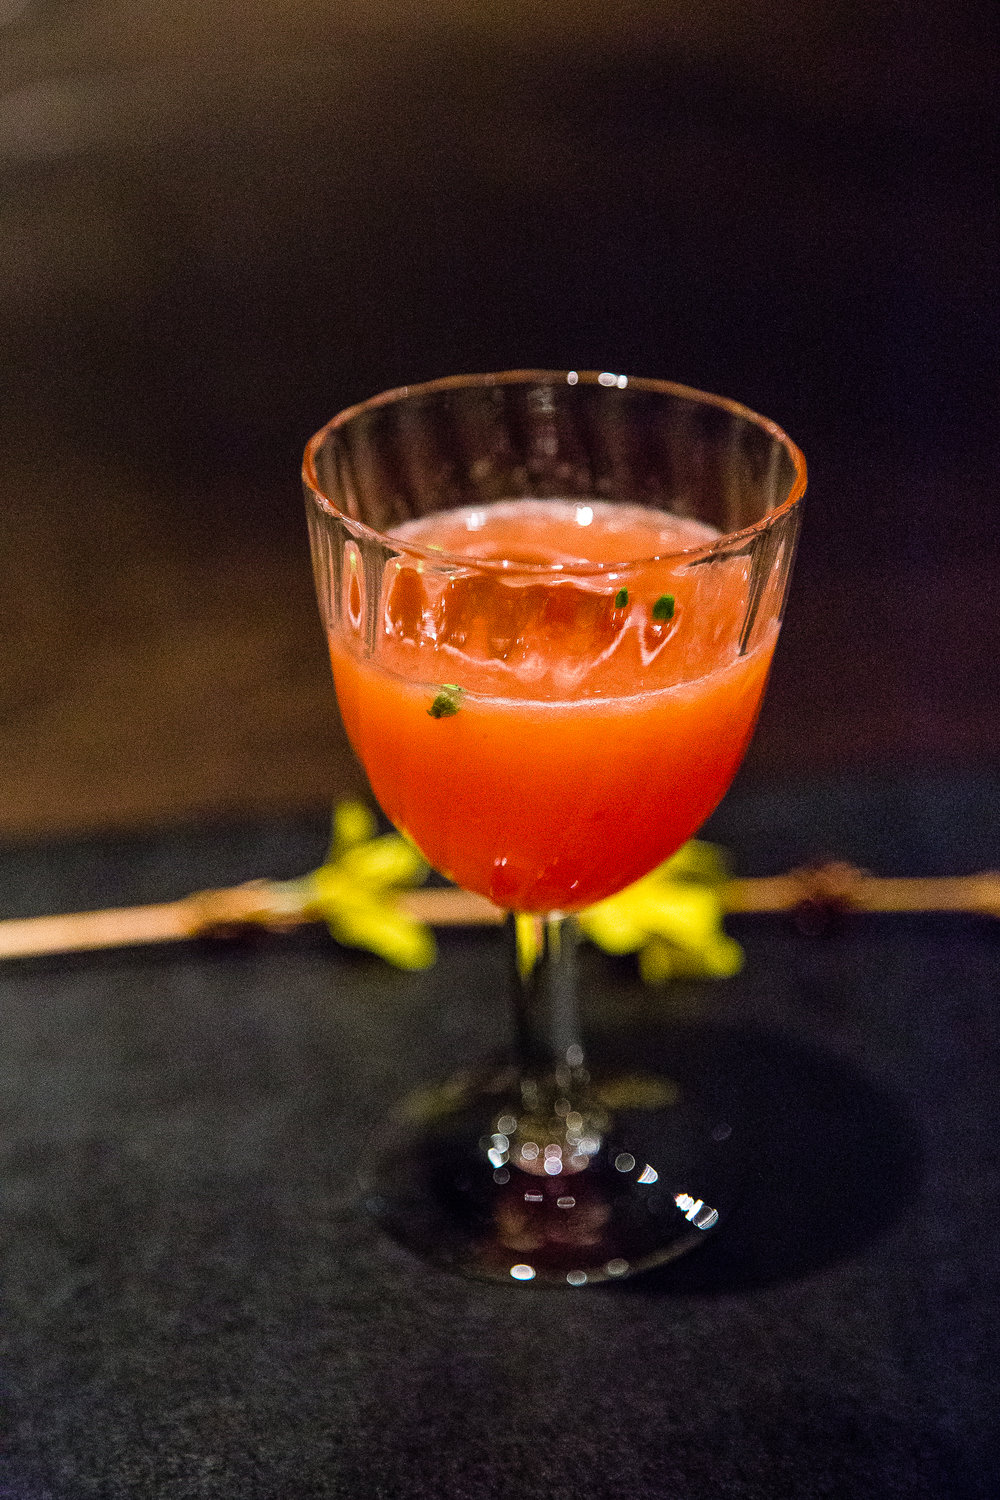 Strawberry, sweet potato shochu, flowers